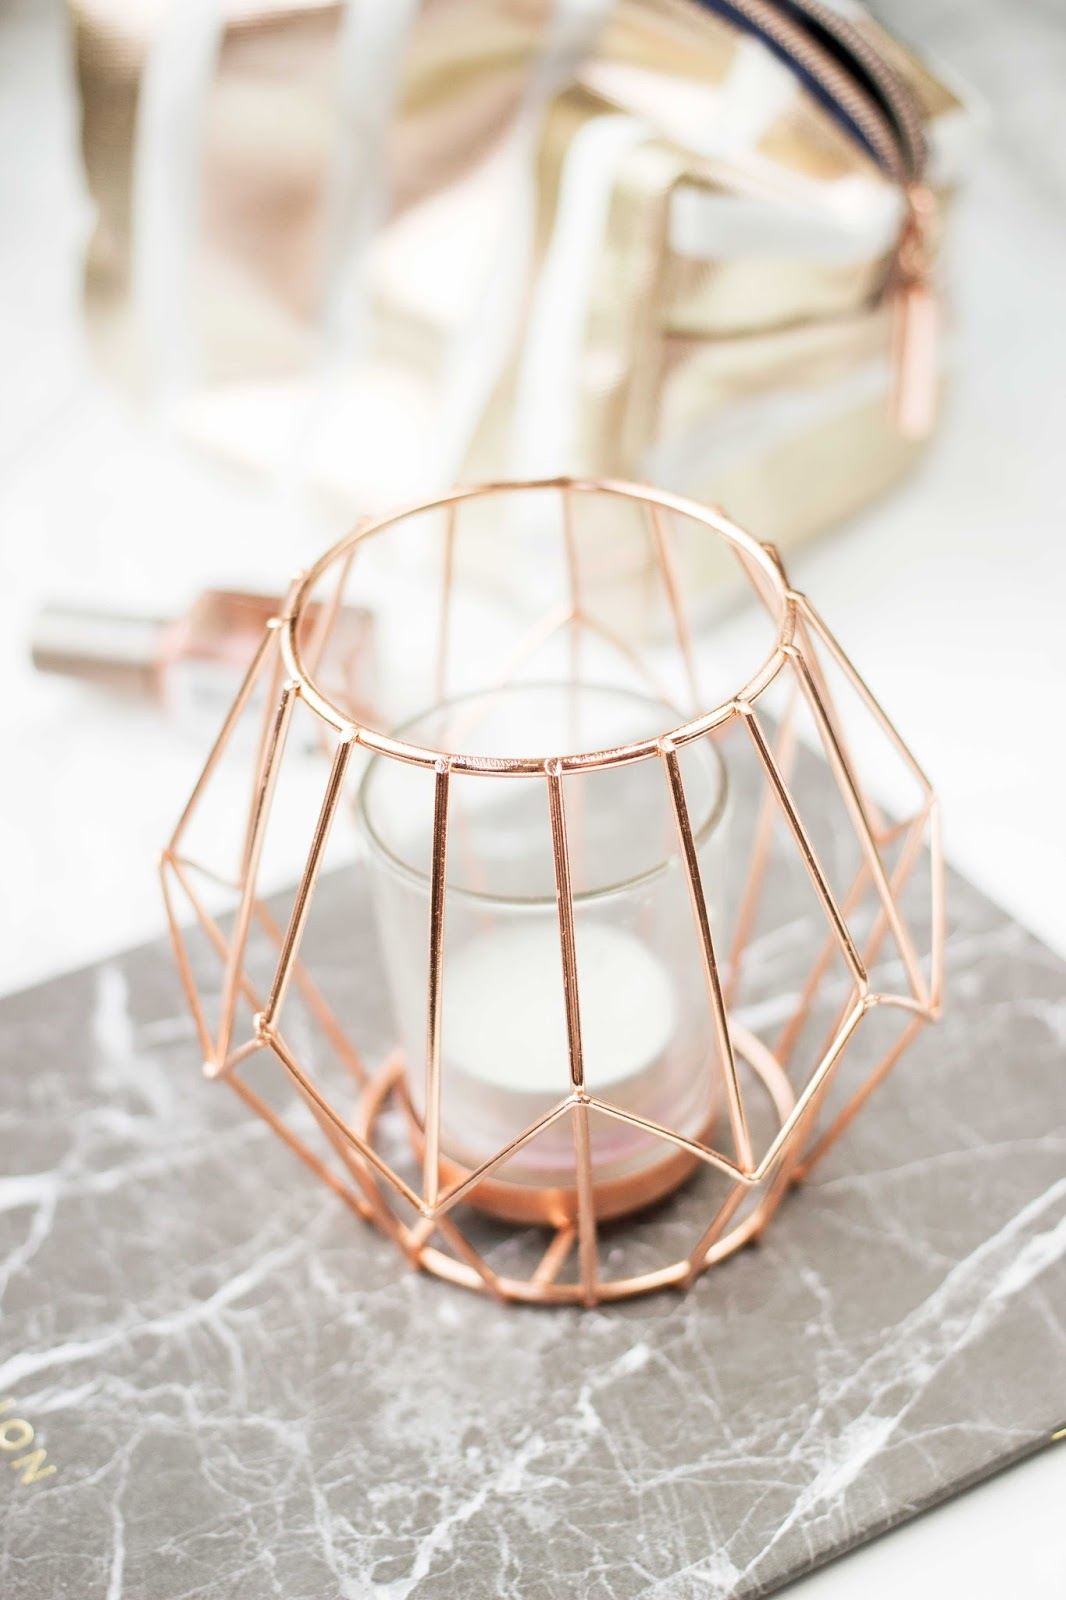 Candle Holder New Look, Copper Candle Holder, Notes Marble Effect Pad, Katie Writes,